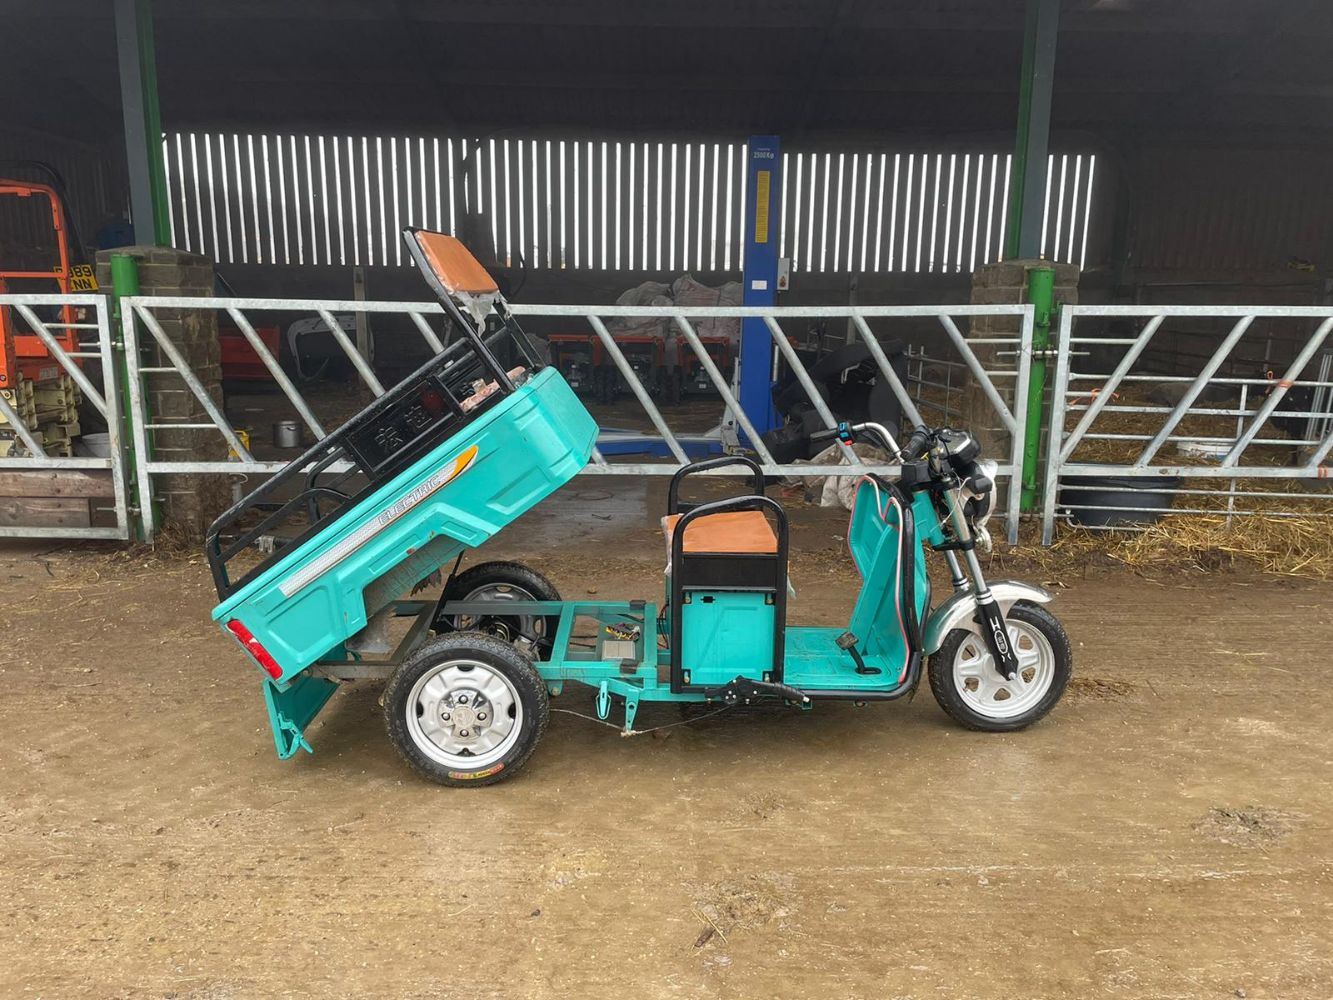 2017 CORMIDI TRACKED DUMPER, 2020 ELECTRIC TRICYCLE, POST KNOCKER, HOOVER, MITSUBISHI CVS CANTER, FIAT 500 + MUCH MORE ENDS TUESDAY FROM 7PM